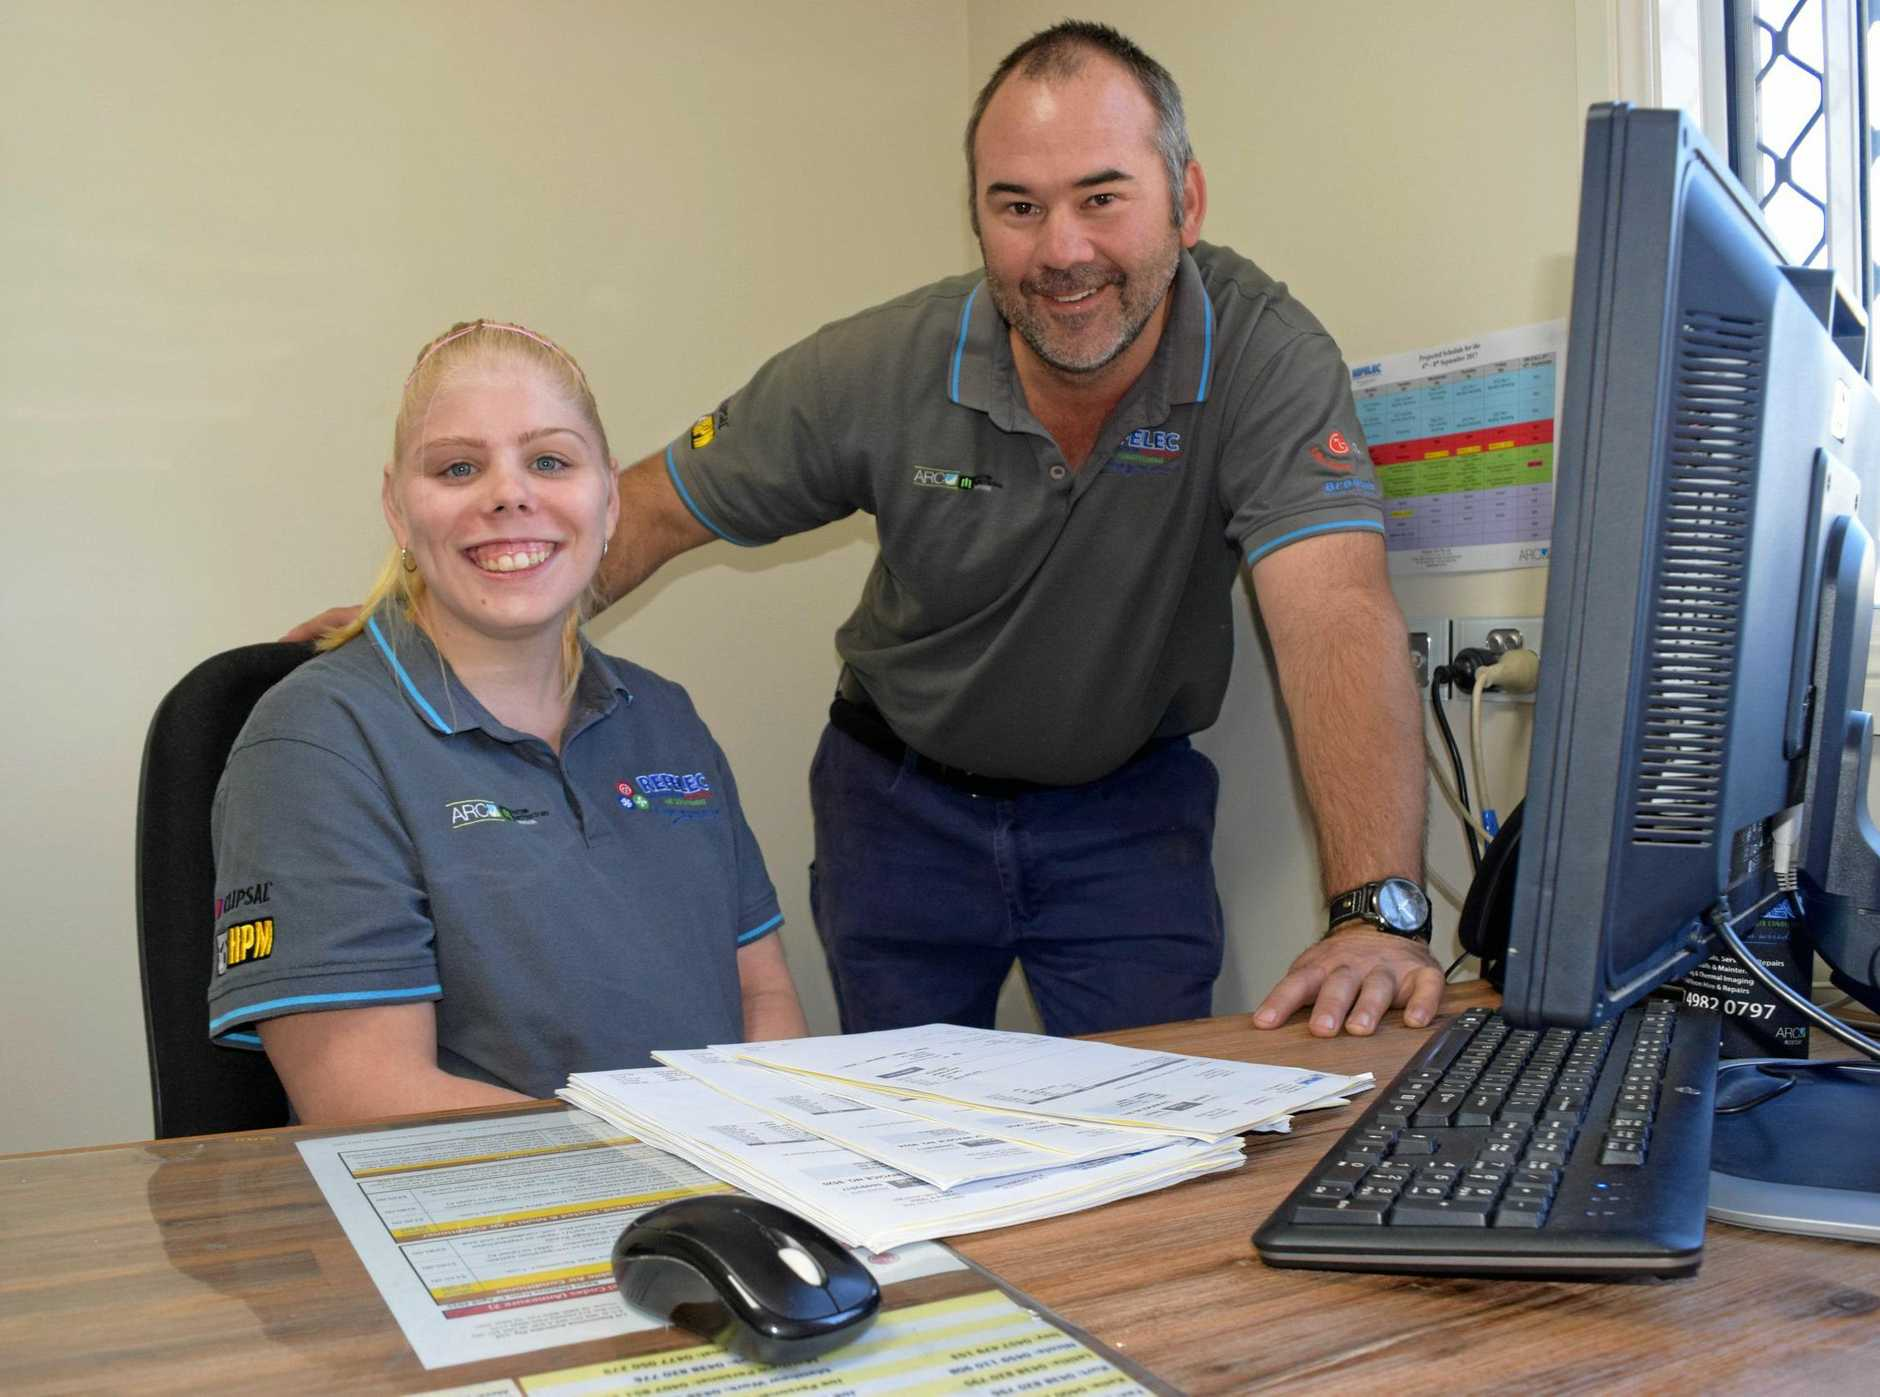 SUPPORT: Refelec's Kurt Renwick and Courtney Earl in the office.